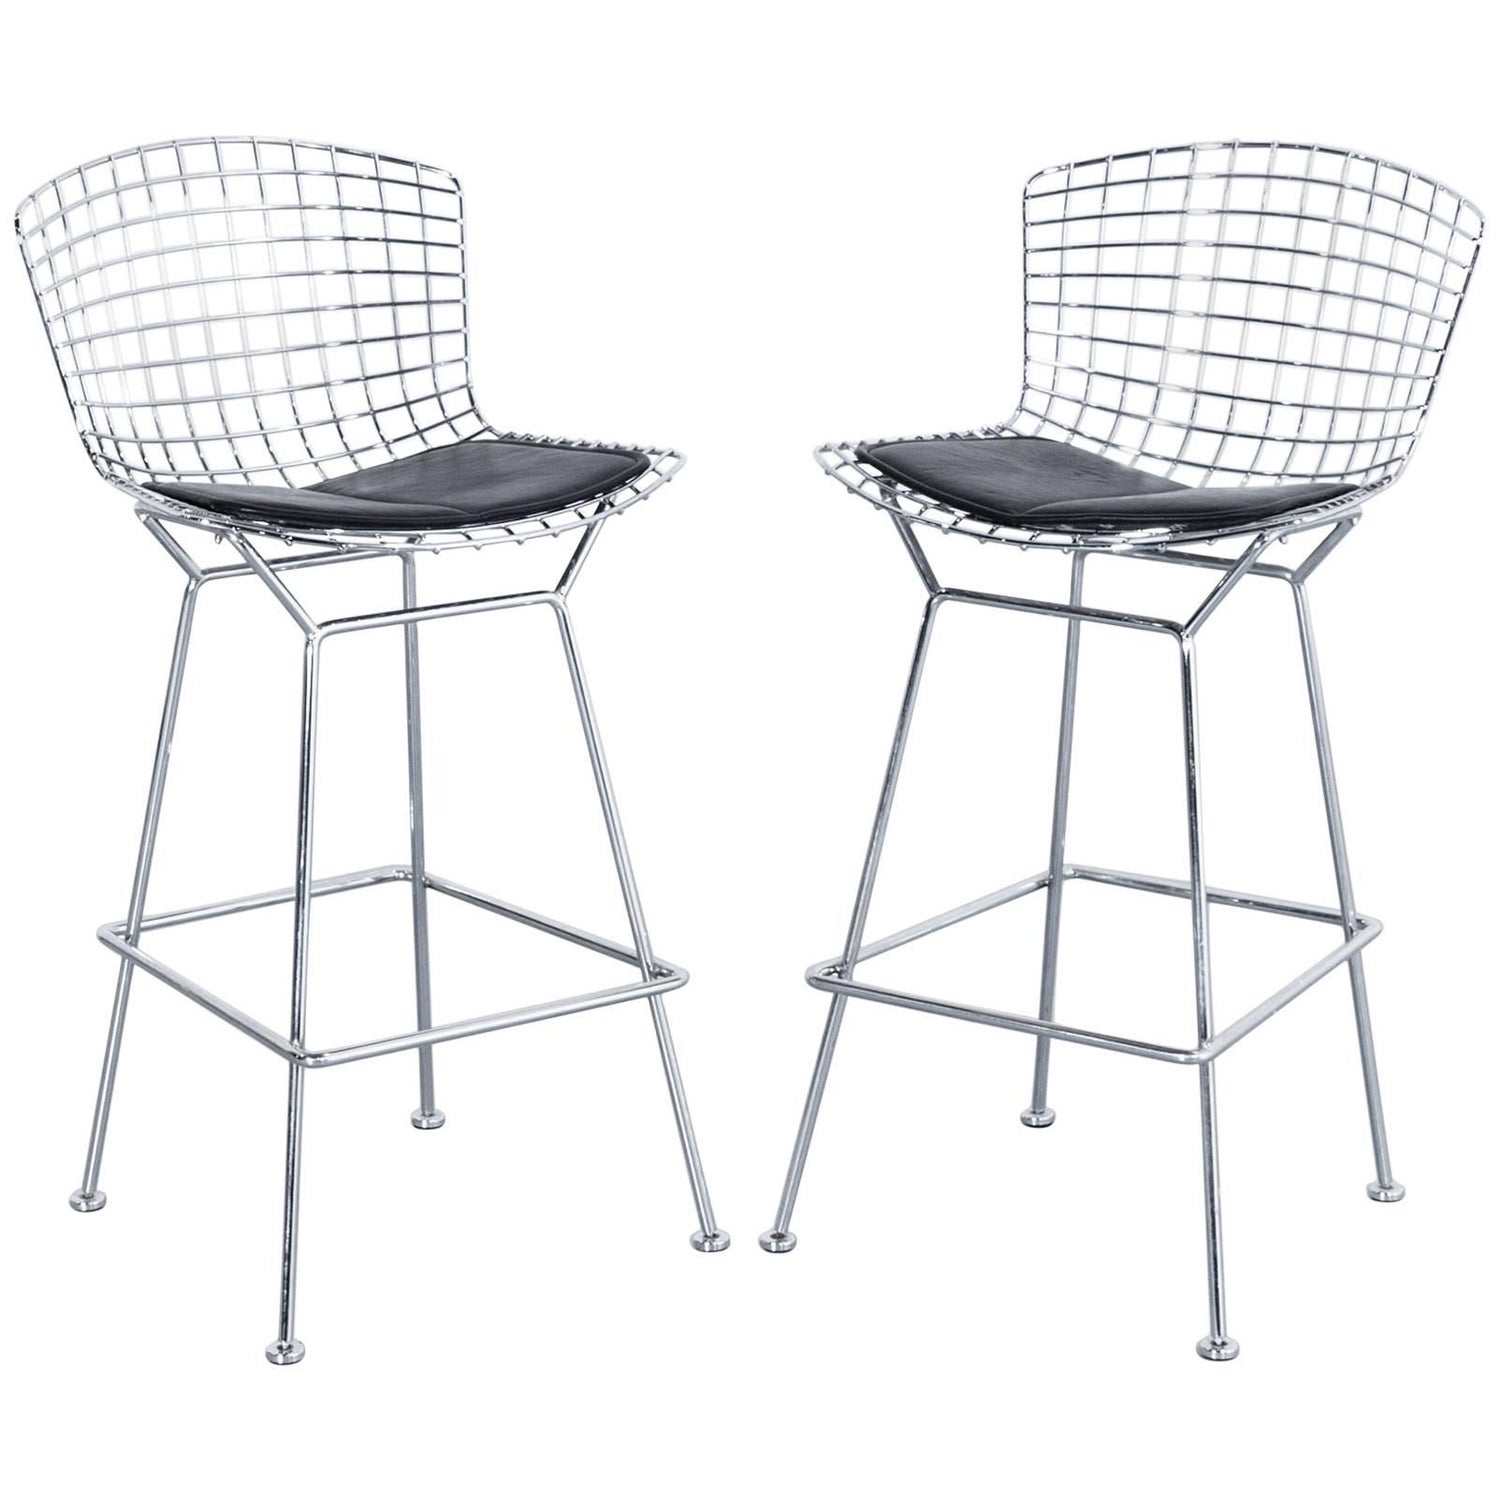 Set Of Two Walter Knoll Harry Bertoia Barstools, Designer Chairs